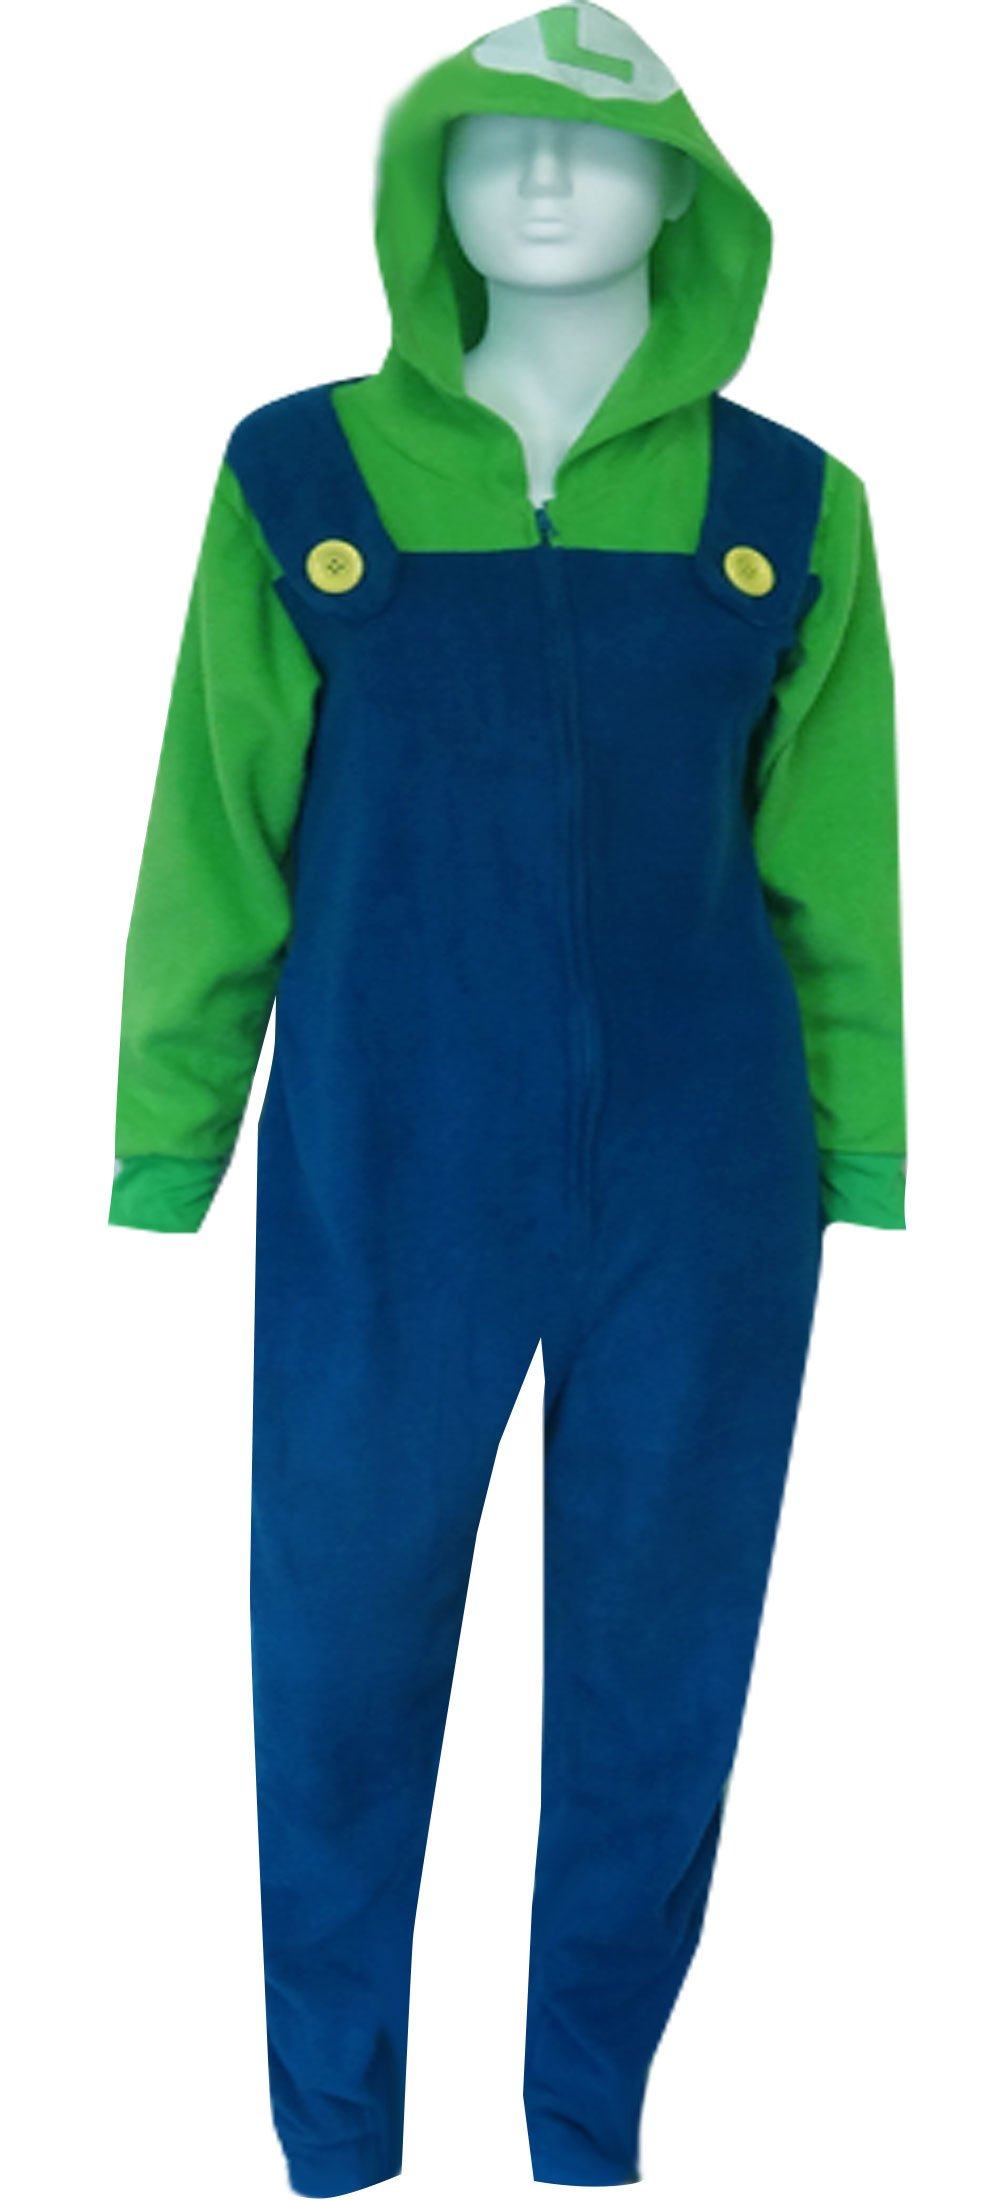 Nintendo Super Mario Brothers Luigi Hooded Onesie Pajama for men